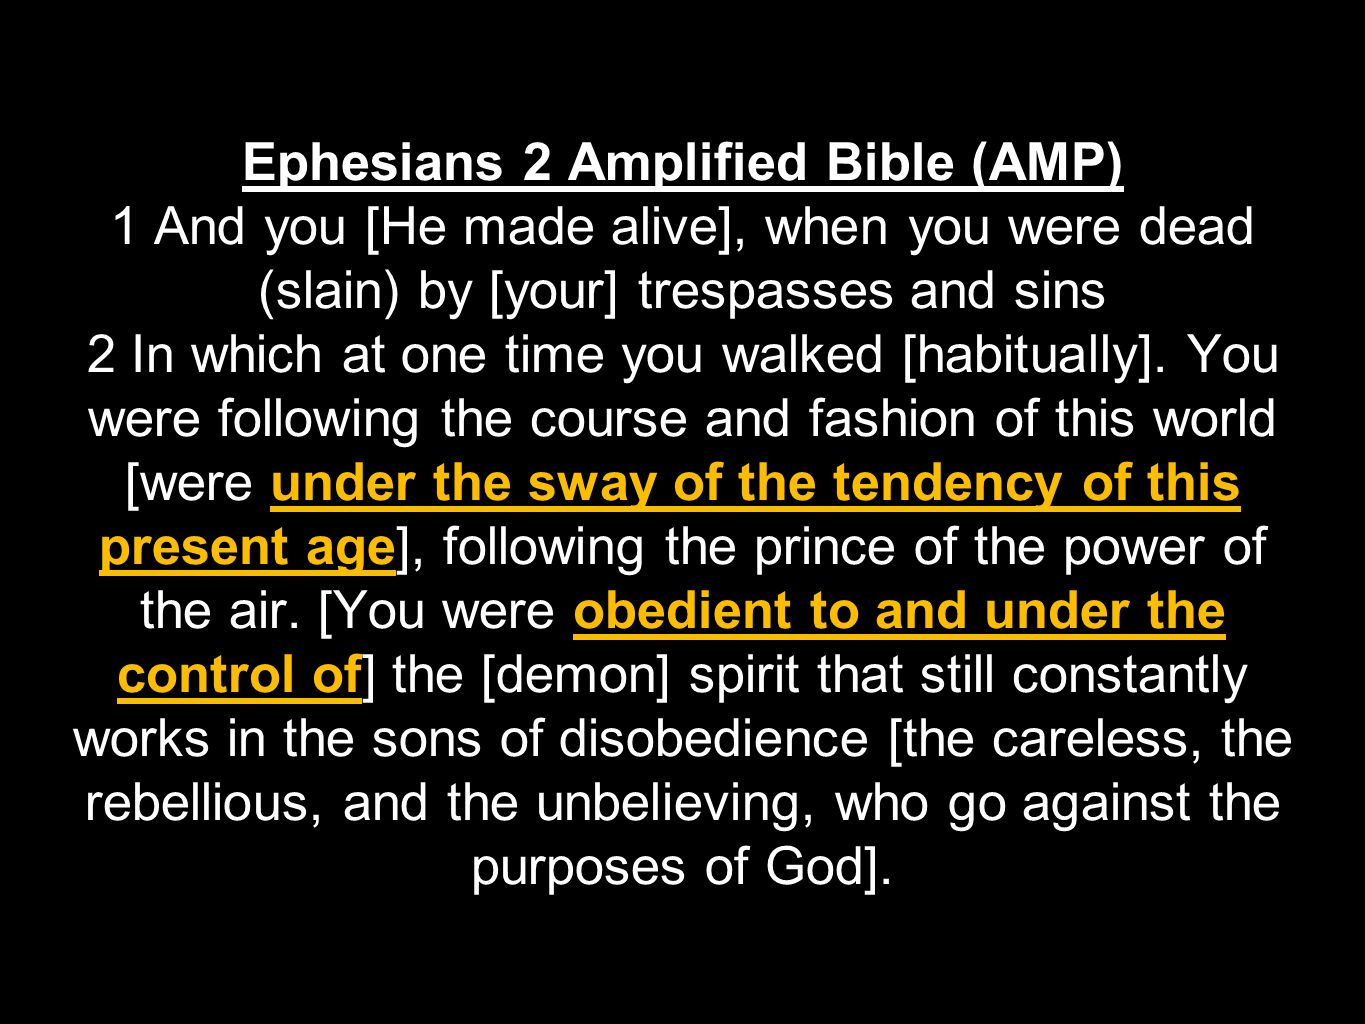 Ephesians 2 Amplified Bible (AMP) 1 And you [He made alive], when you were dead (slain) by [your] trespasses and sins 2 In which at one time you walke